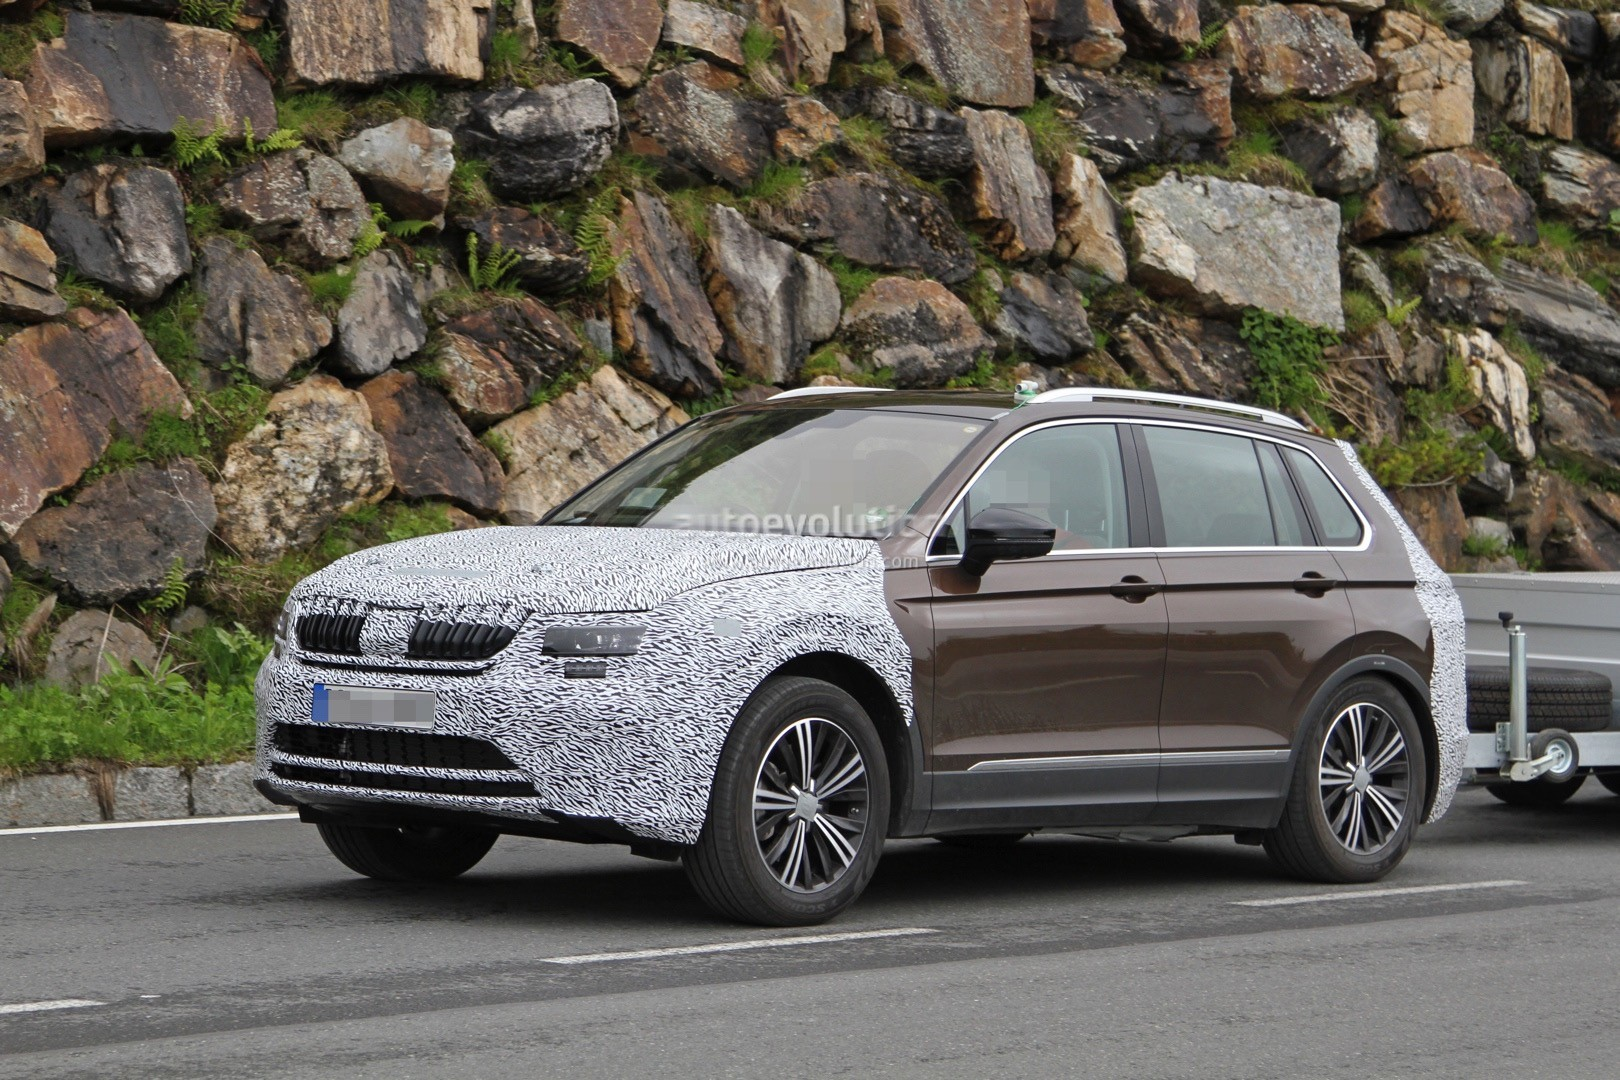 2018 skoda yeti spied looks like a volkswagen tiguan with a different face autoevolution. Black Bedroom Furniture Sets. Home Design Ideas